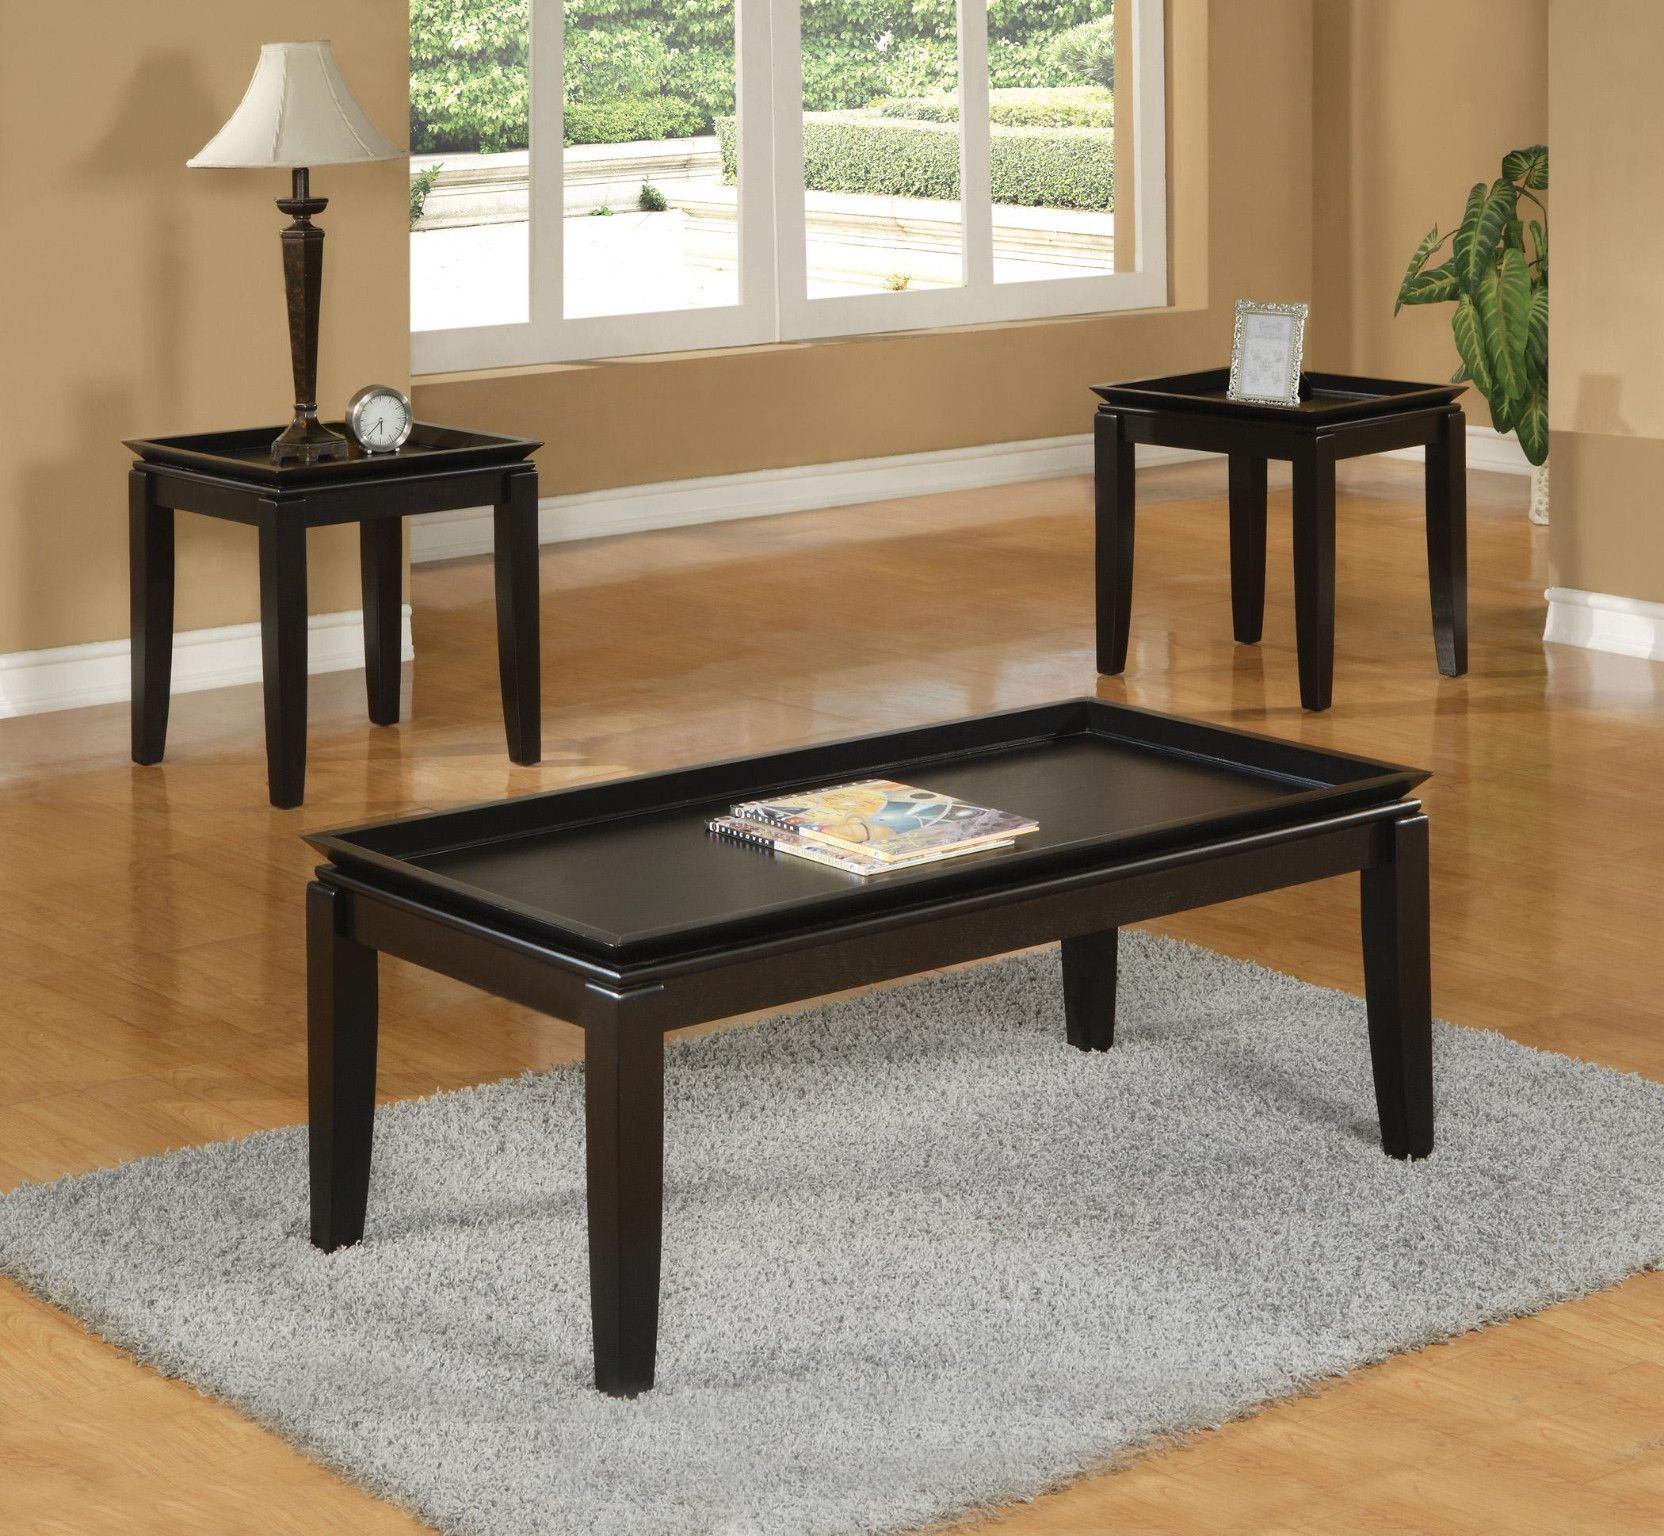 Calla 3 Piece Table Set Coffee And 2 End Tables 249 00 Coffee Table 48 X 24 X 18 H End Tabl Coffee Table Coffee Table Wood Living Spaces Furniture [ 1536 x 1664 Pixel ]